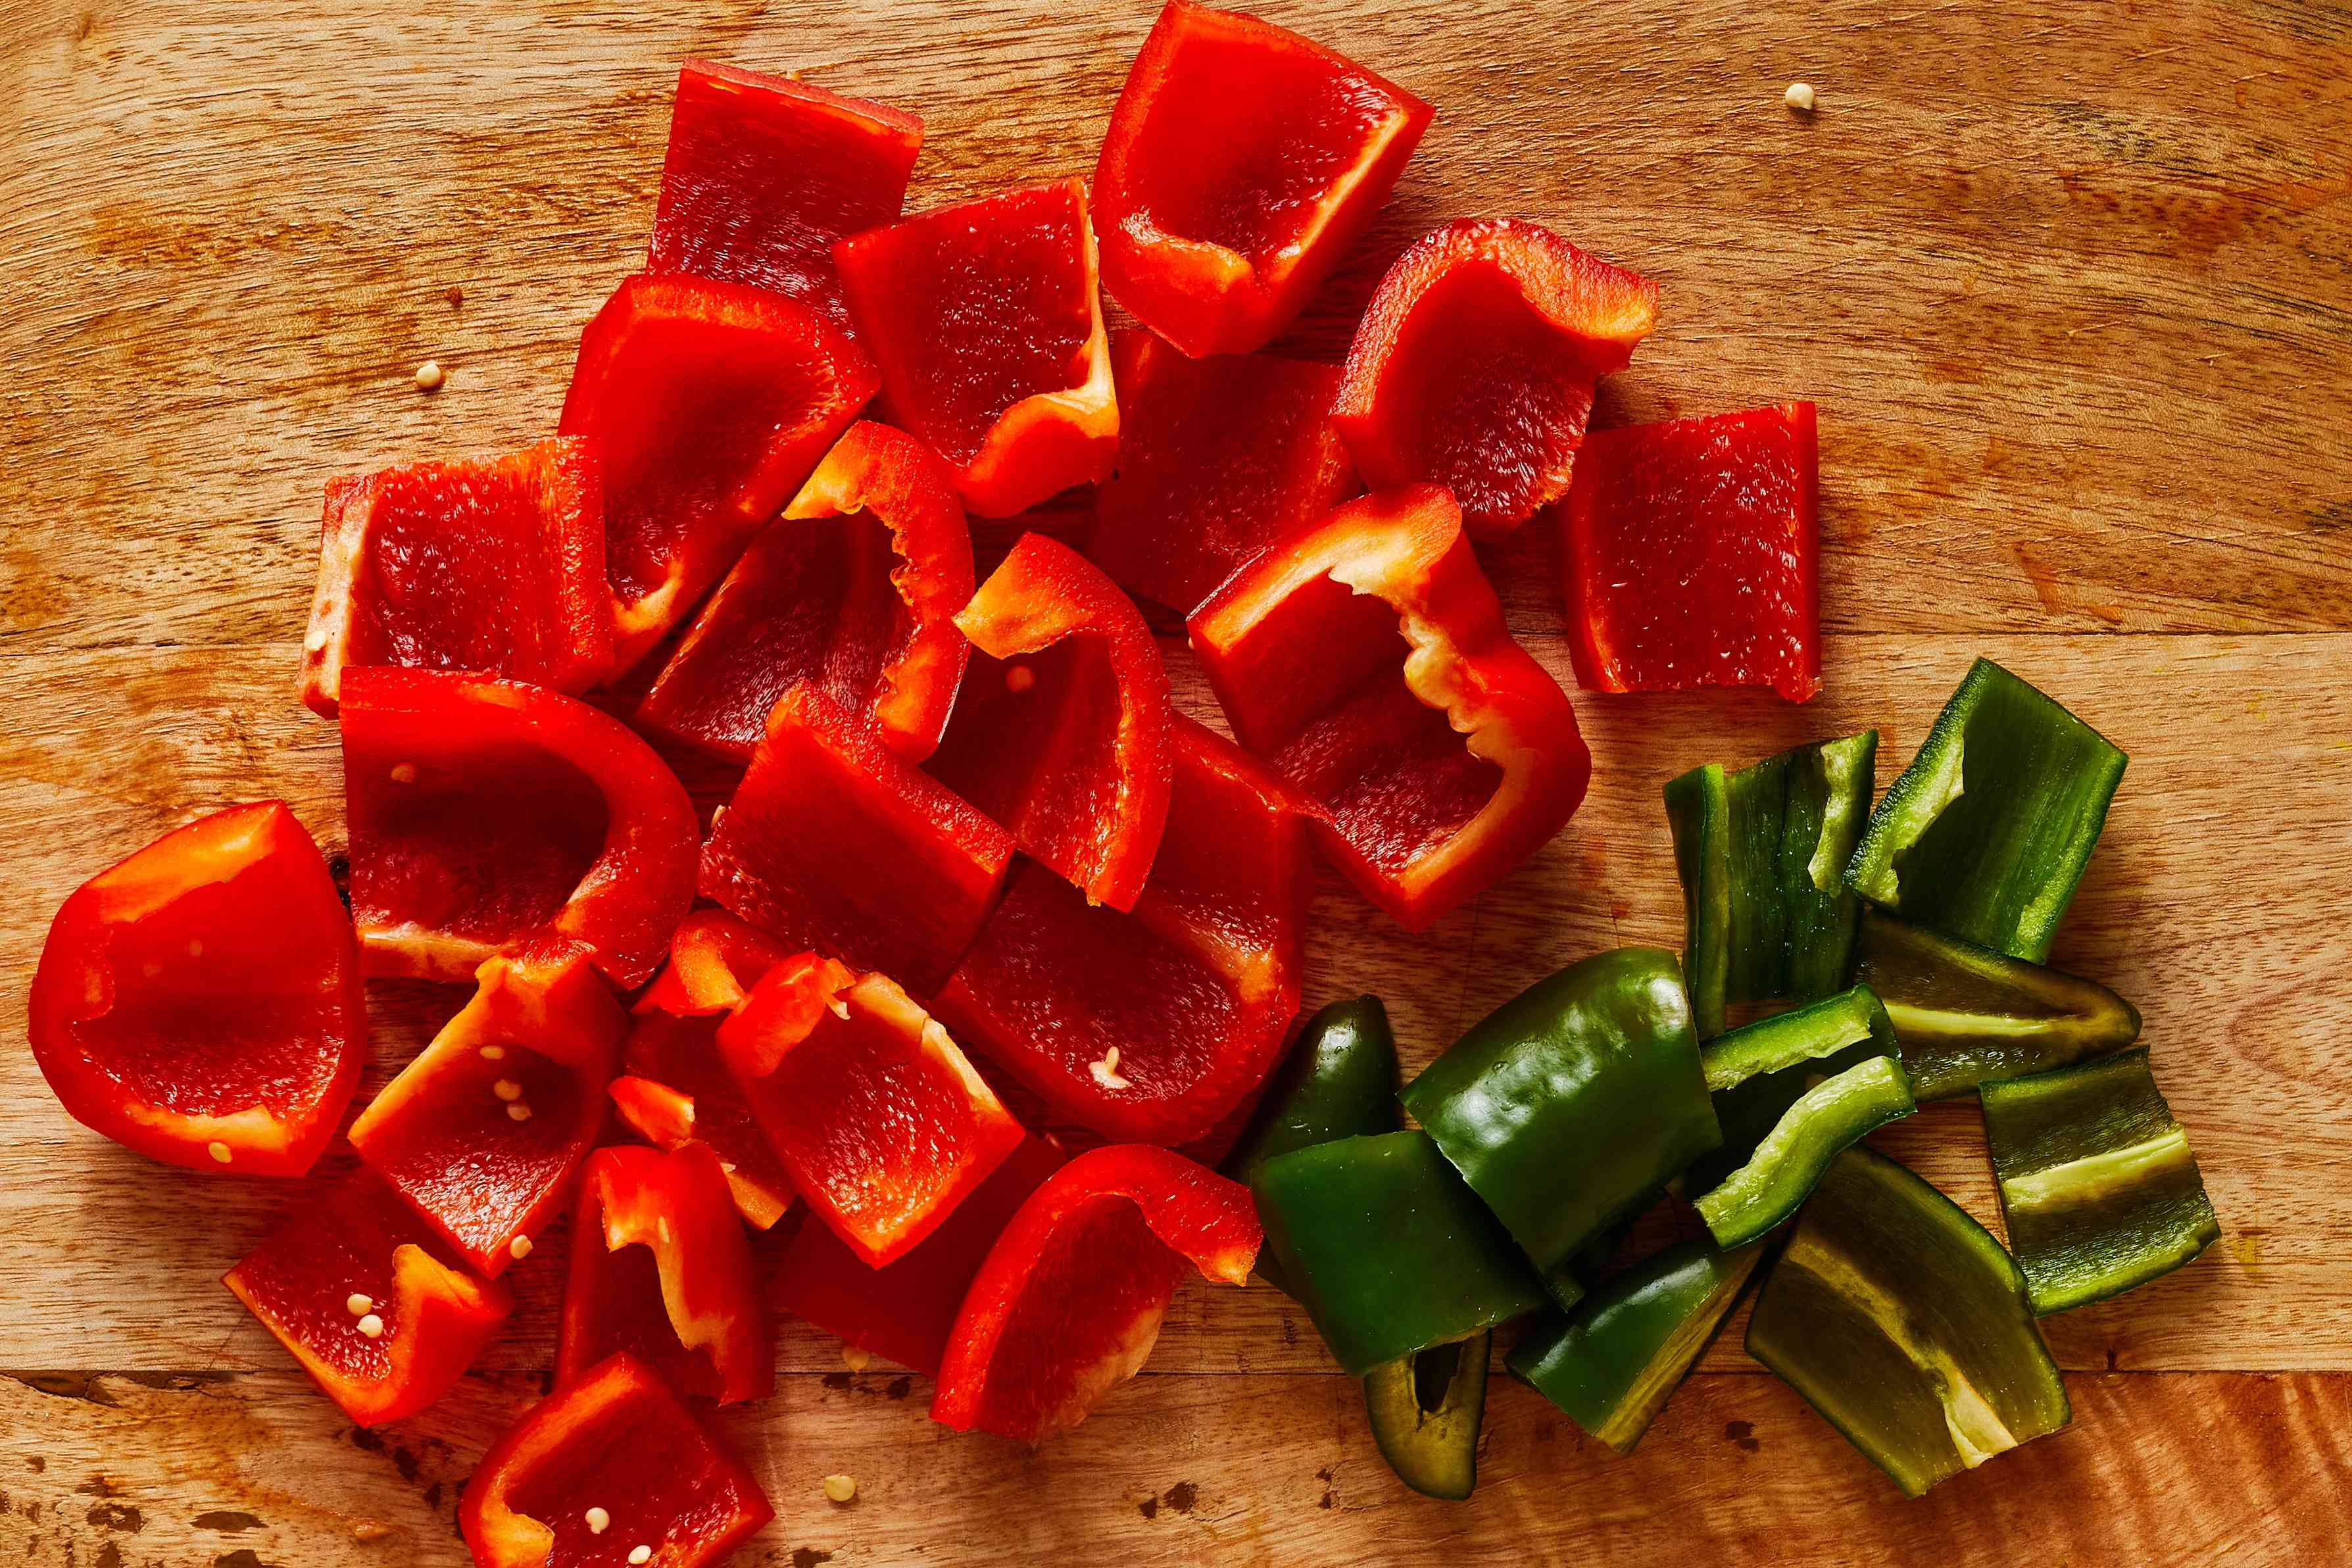 Cut the flesh of the peppers into large pieces